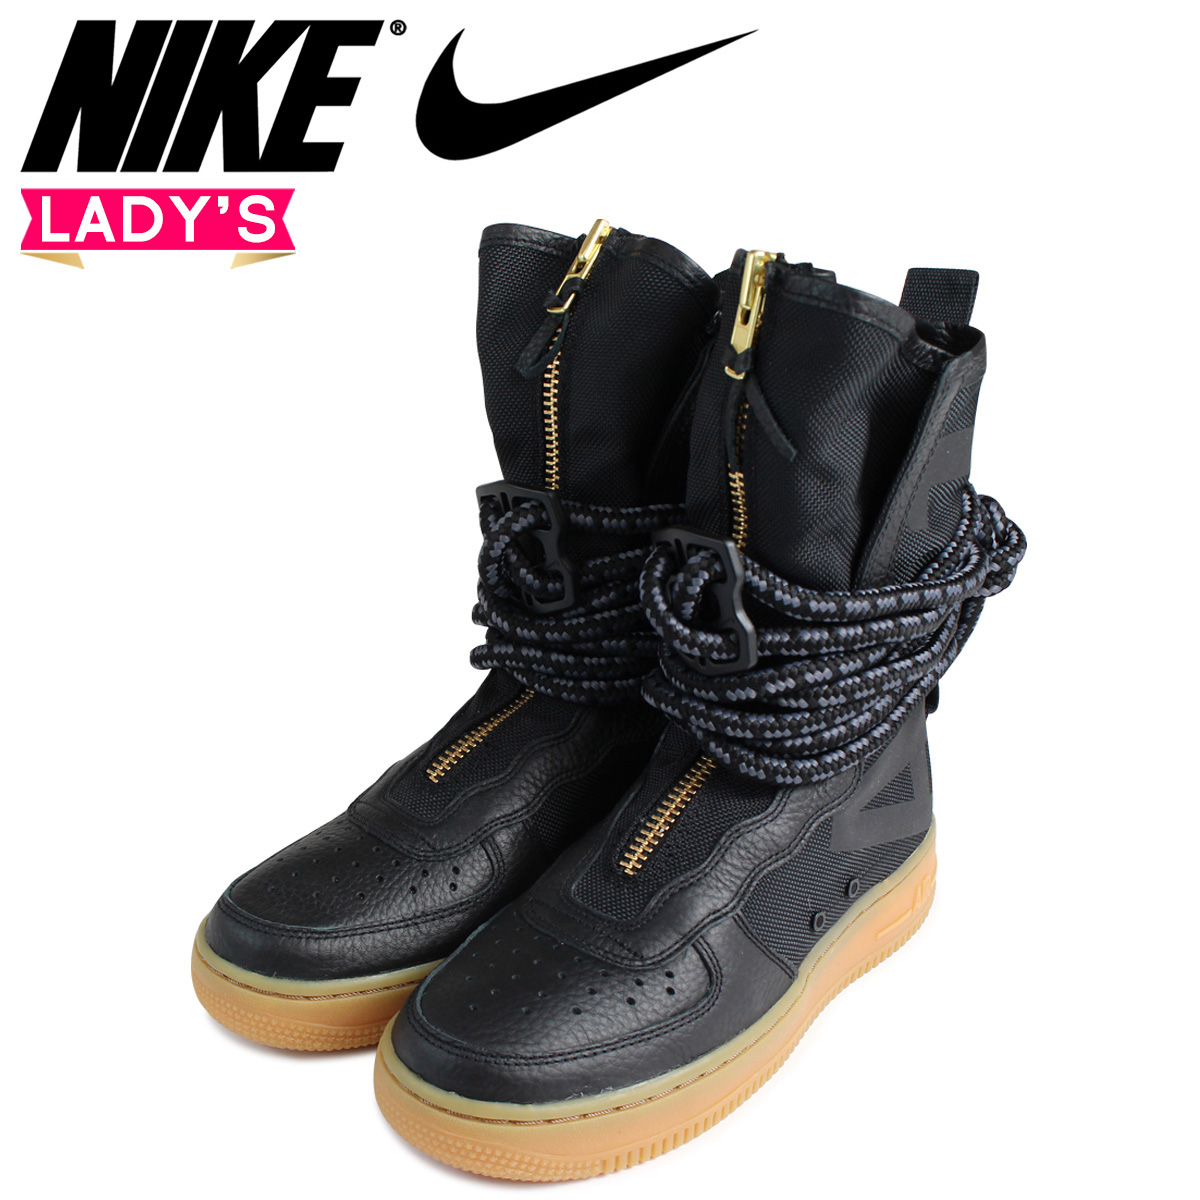 official photos ce92c 21b17 NIKE Nike air force 1 HI Lady's sneakers SPECIAL FIELD ARE FORCE 1  AA3965-001 SF AF1 shoes black black